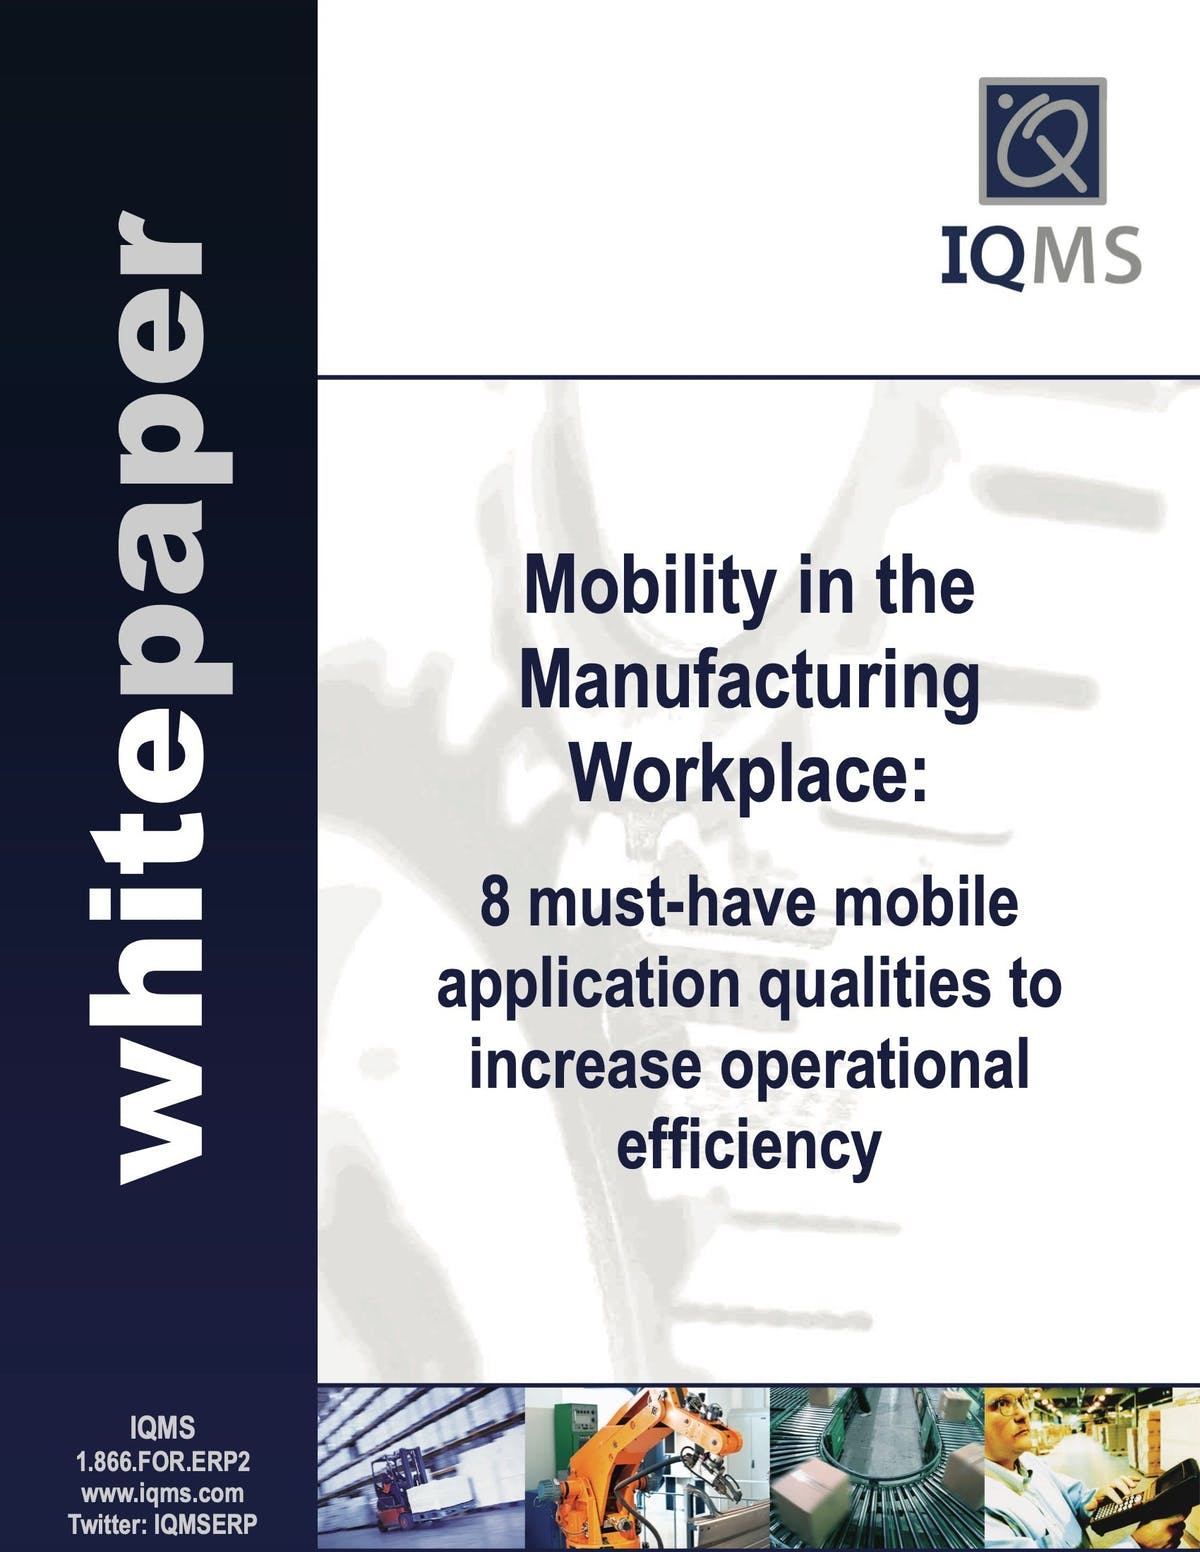 EnterpriseIQ White Paper - Mobility in the Manufacturing Workplace